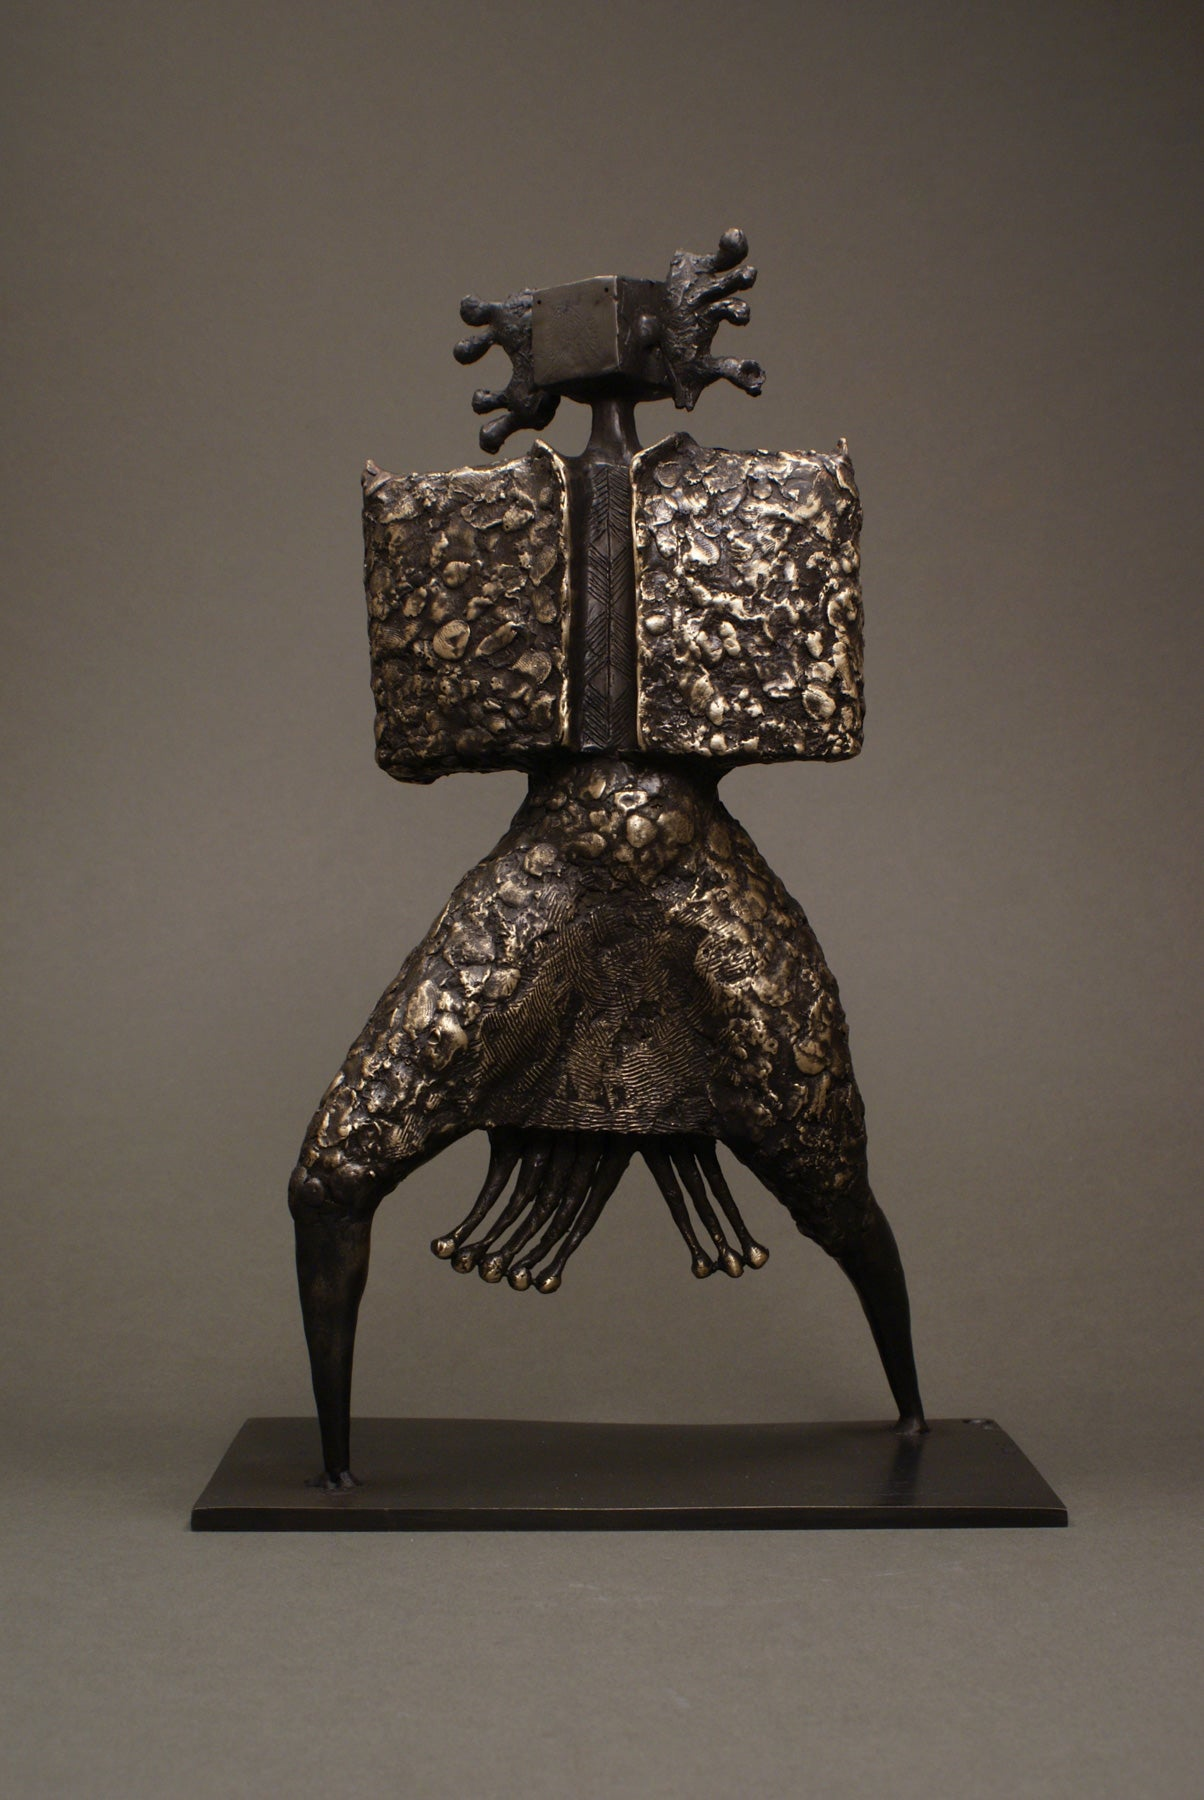 Shaman bronze sculpture for sale